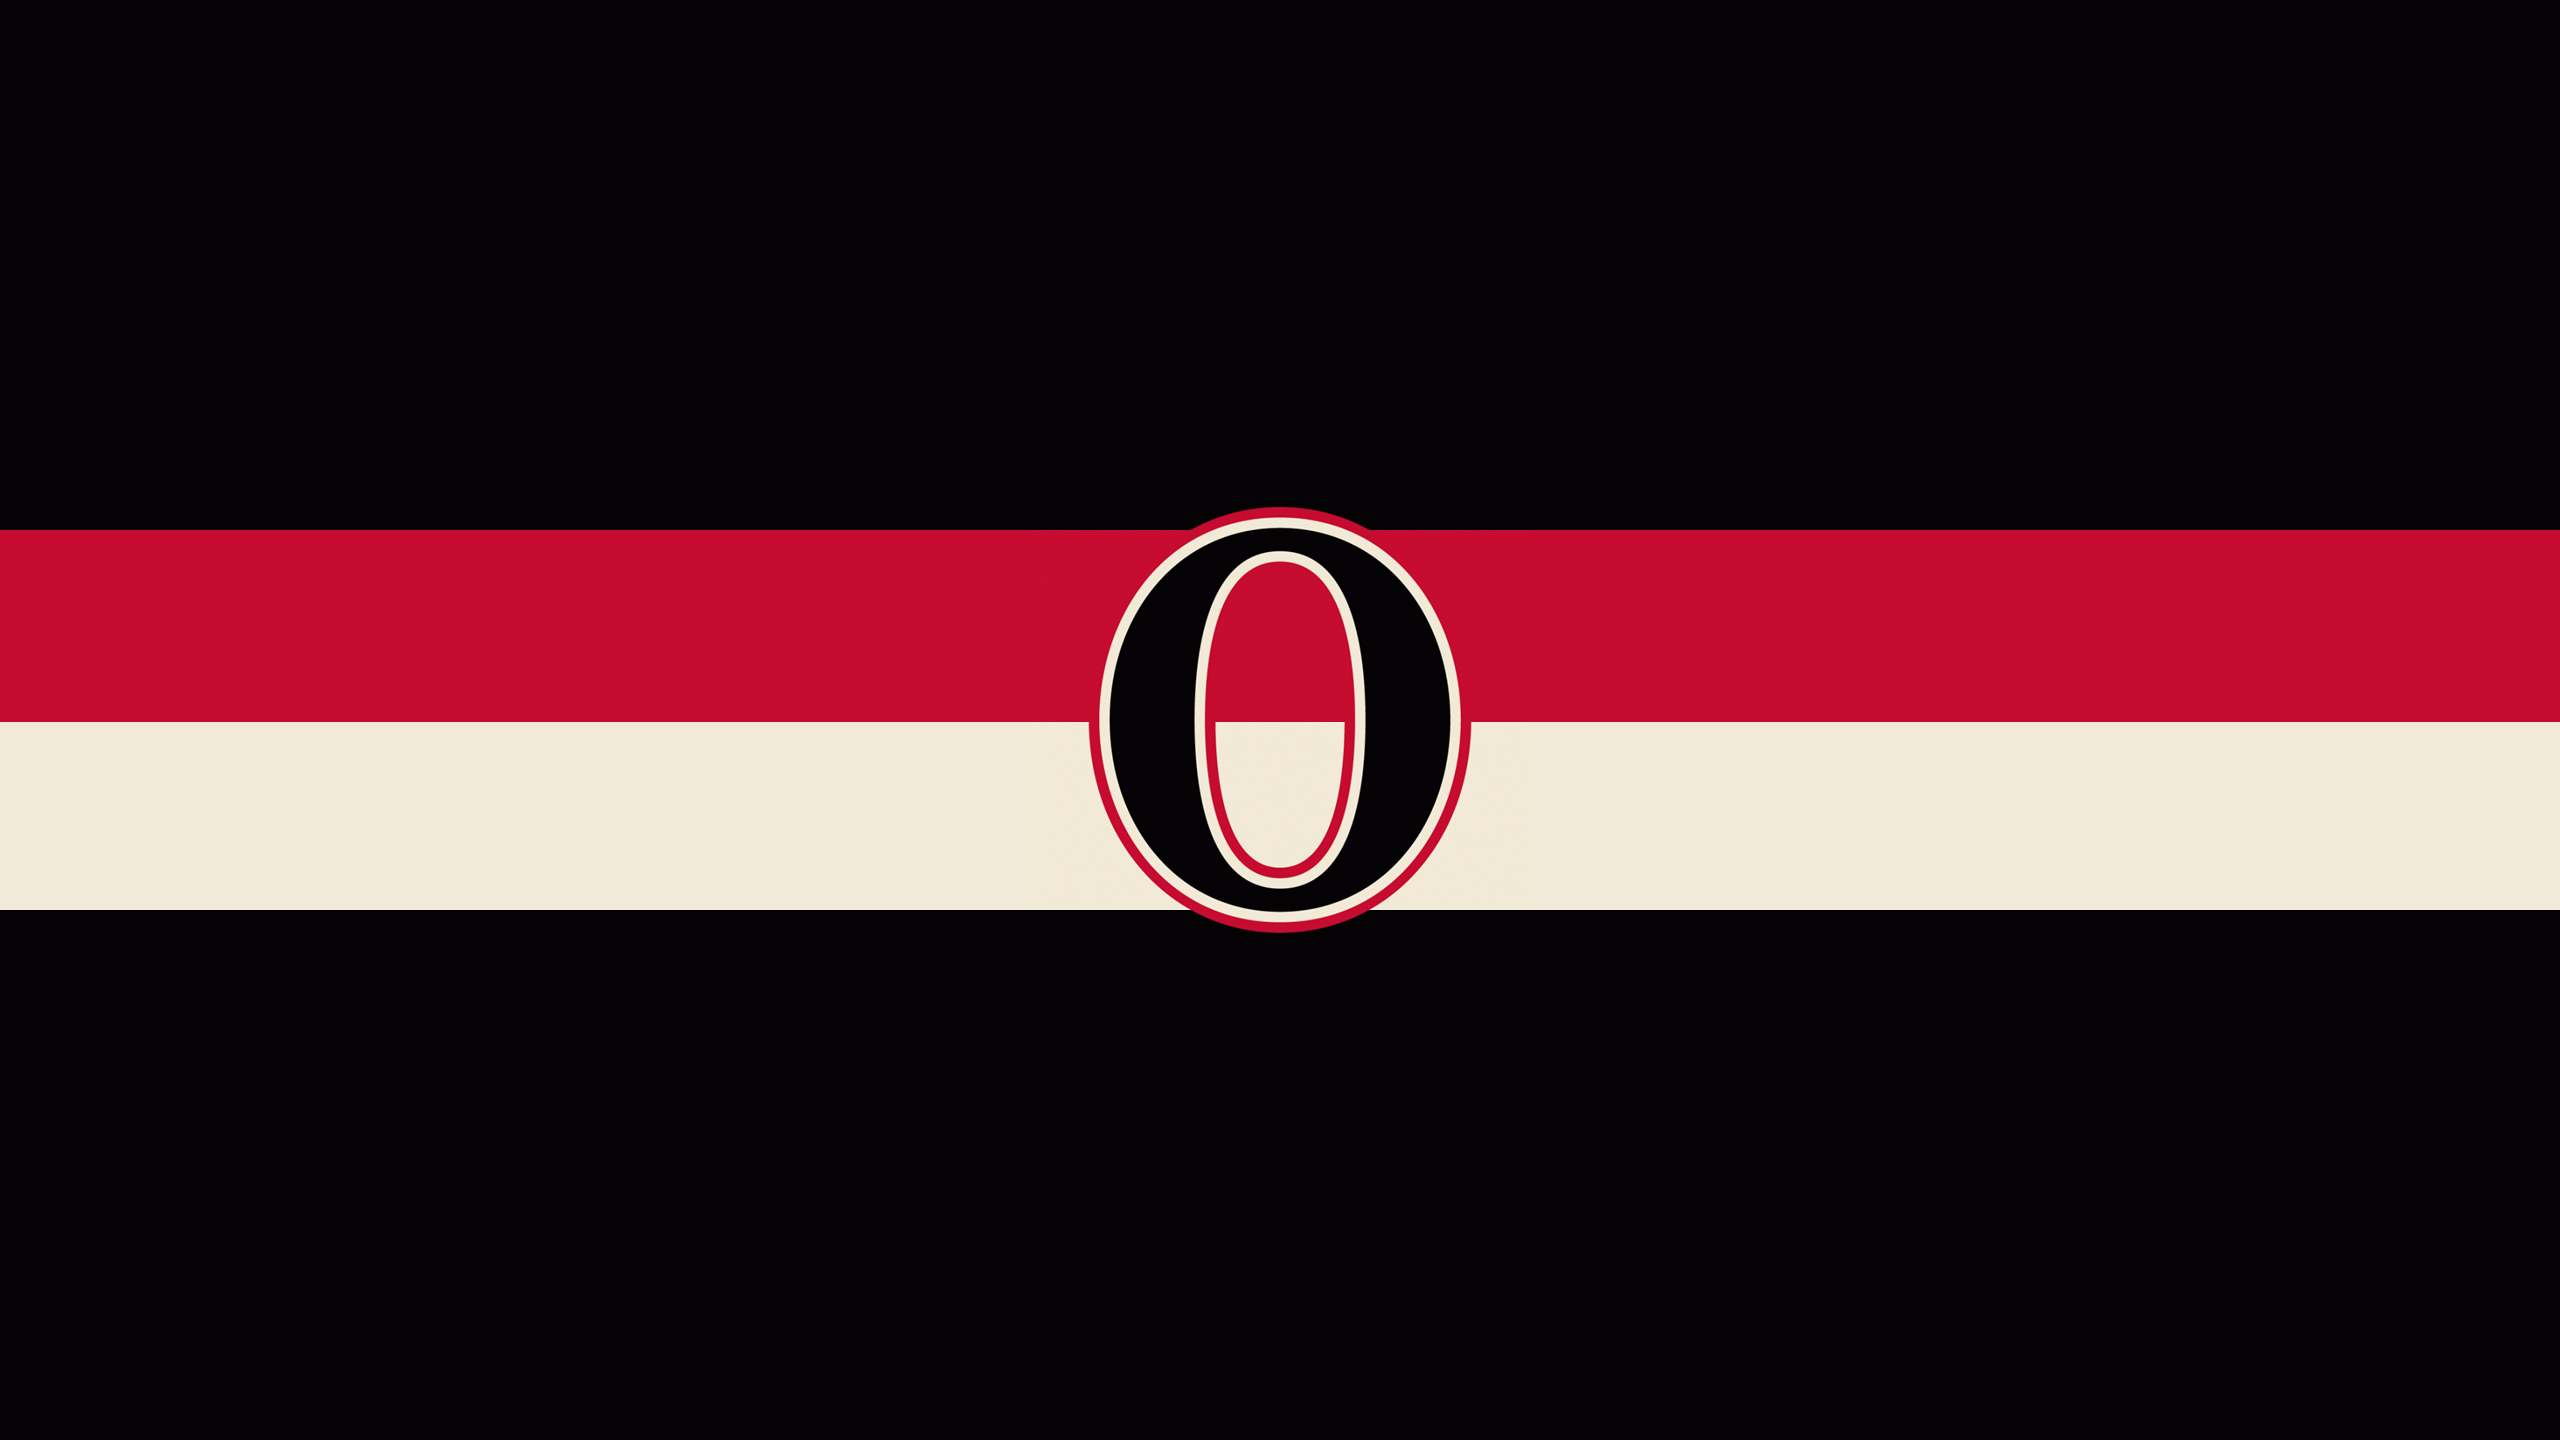 Ottawa Senators (Old School)